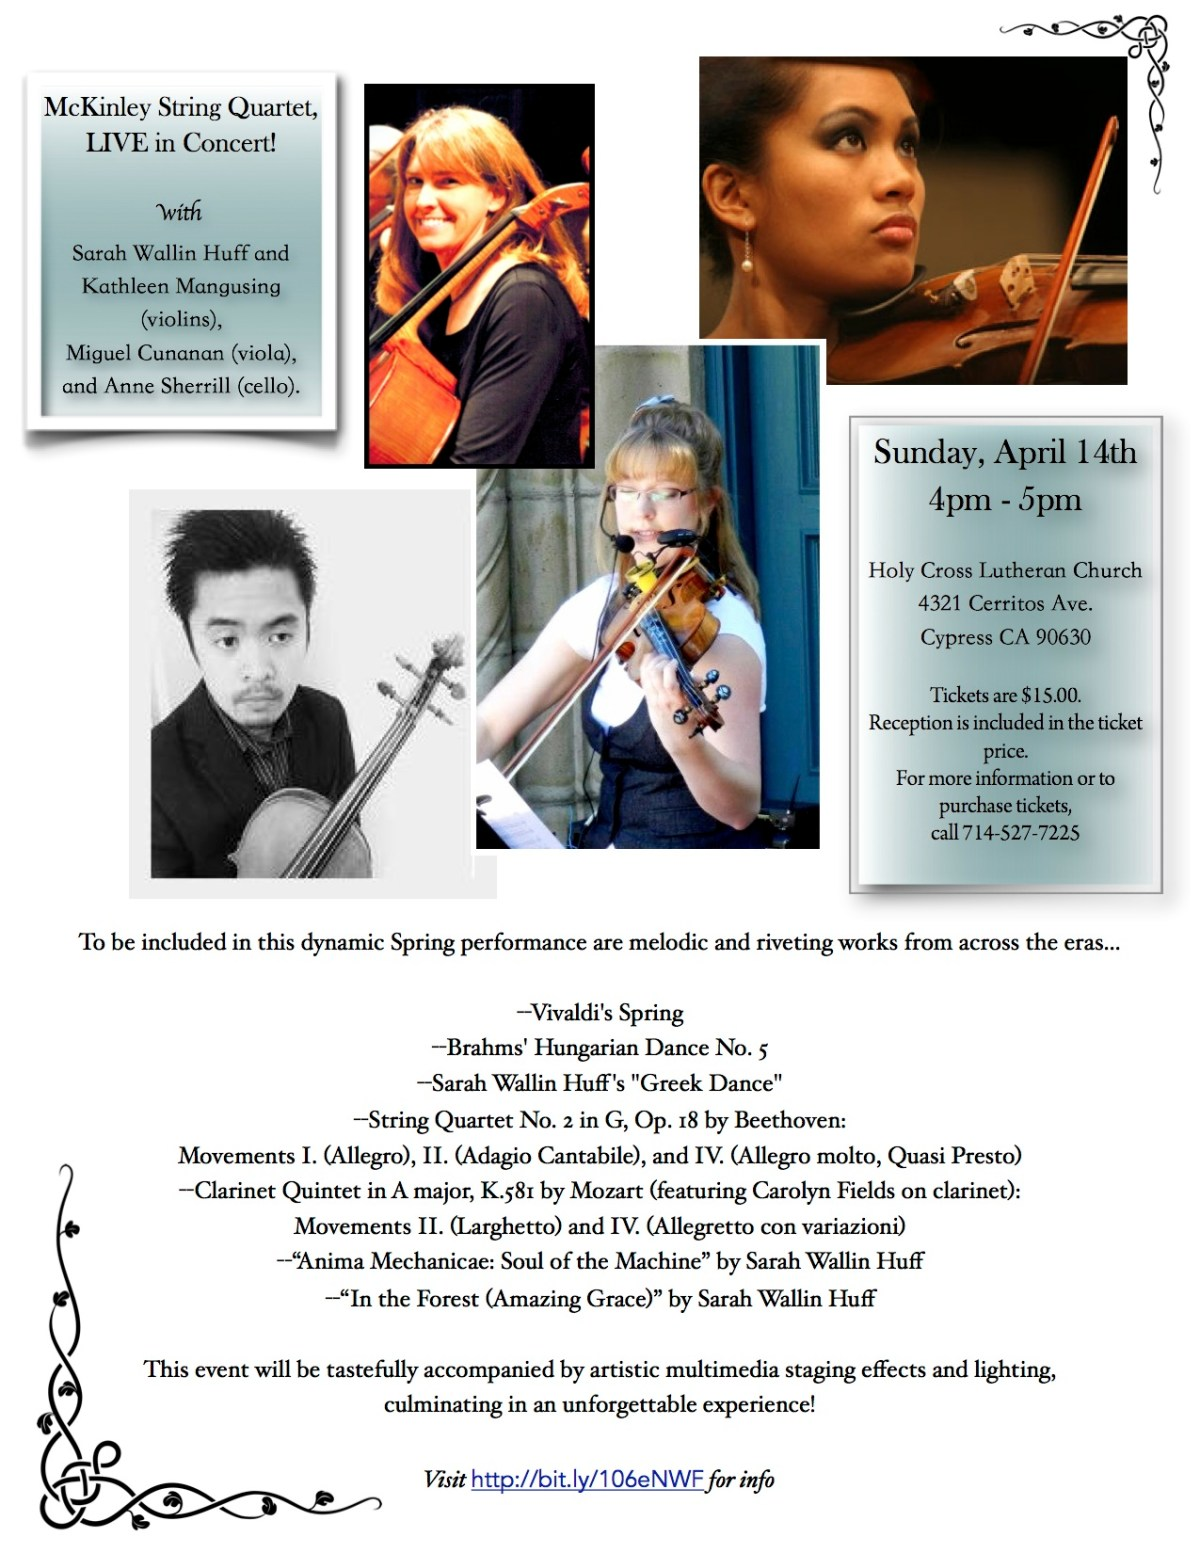 McKinley Quartet Flyer